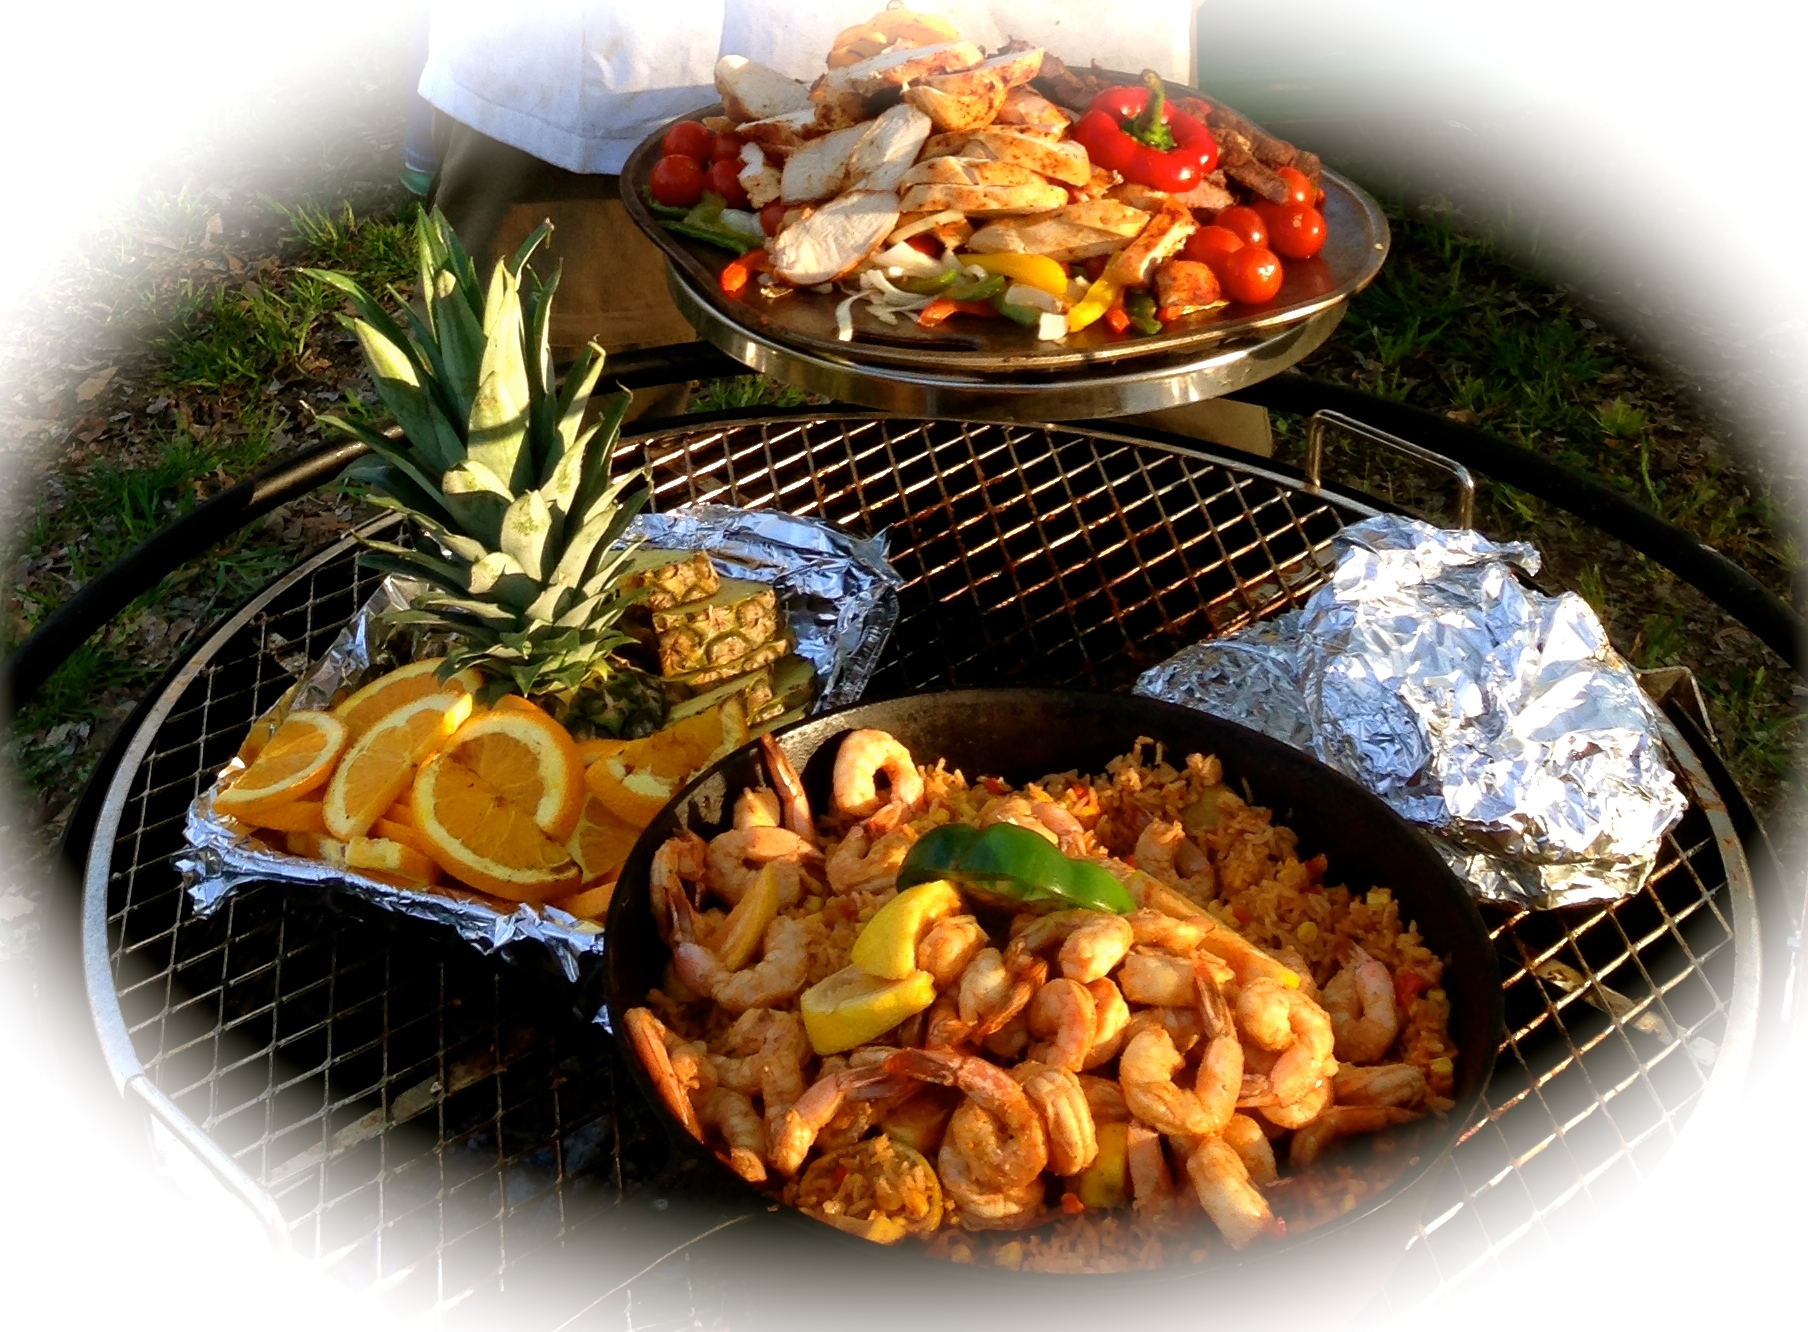 grilled Mexican feast of chicken and shrimp fajitas and spanish rice